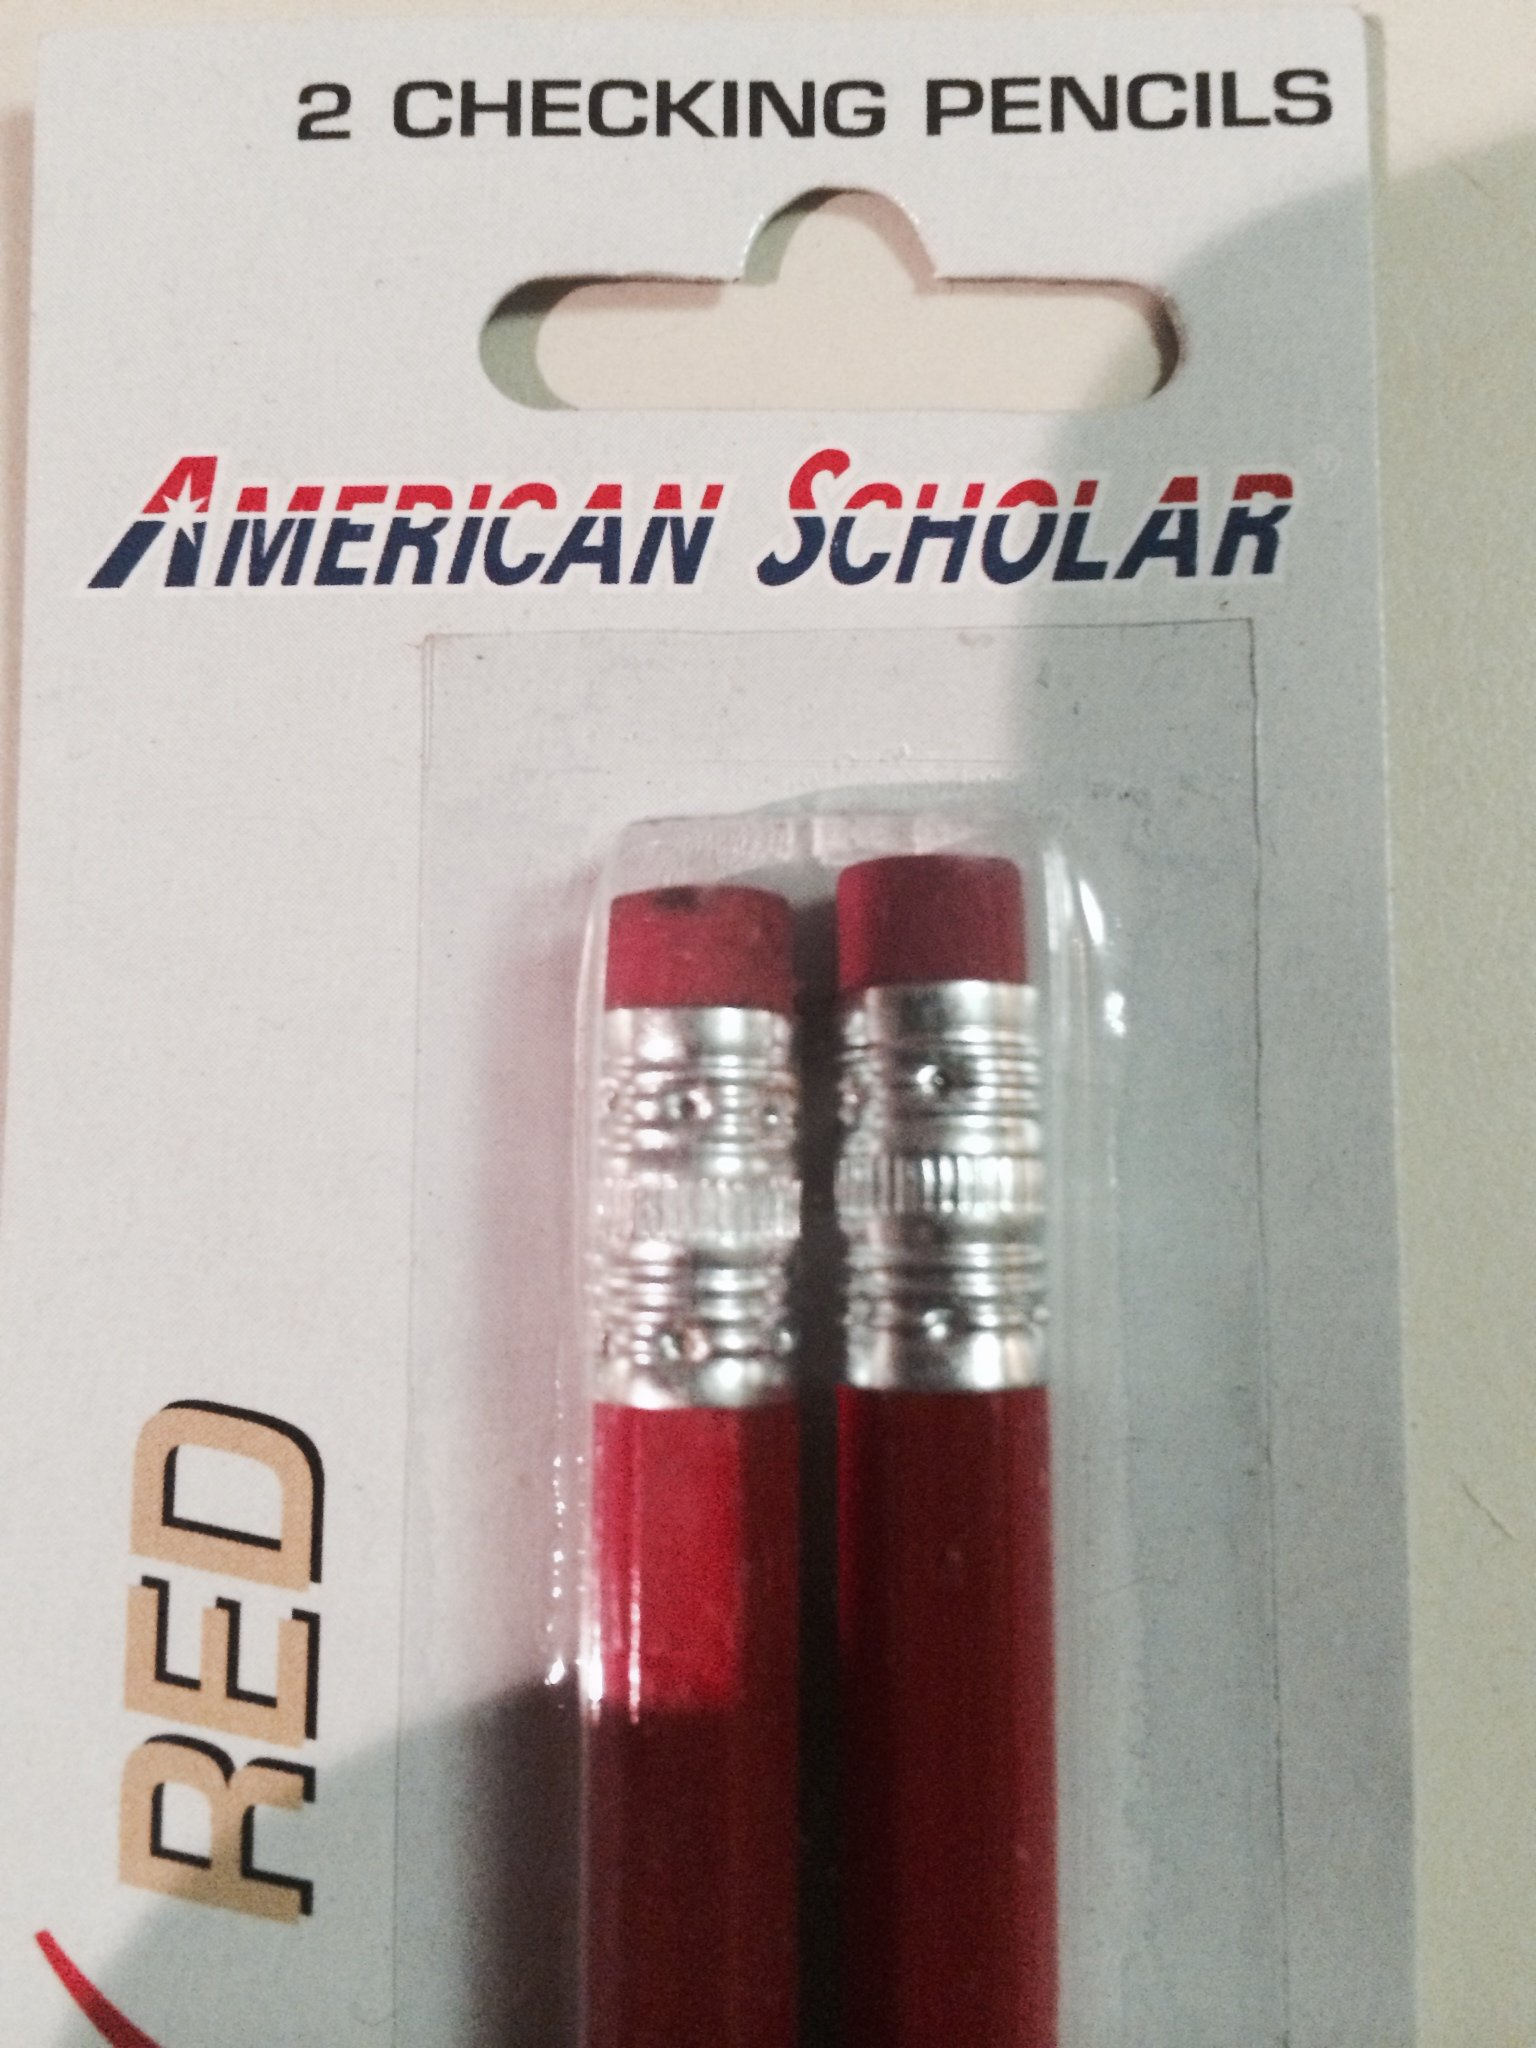 AMERICAN SCHOLAR CHECKING PENCIL WITH ERASER (RED) 48 PENCILS (24 PKX2) by American scholar (Image #4)